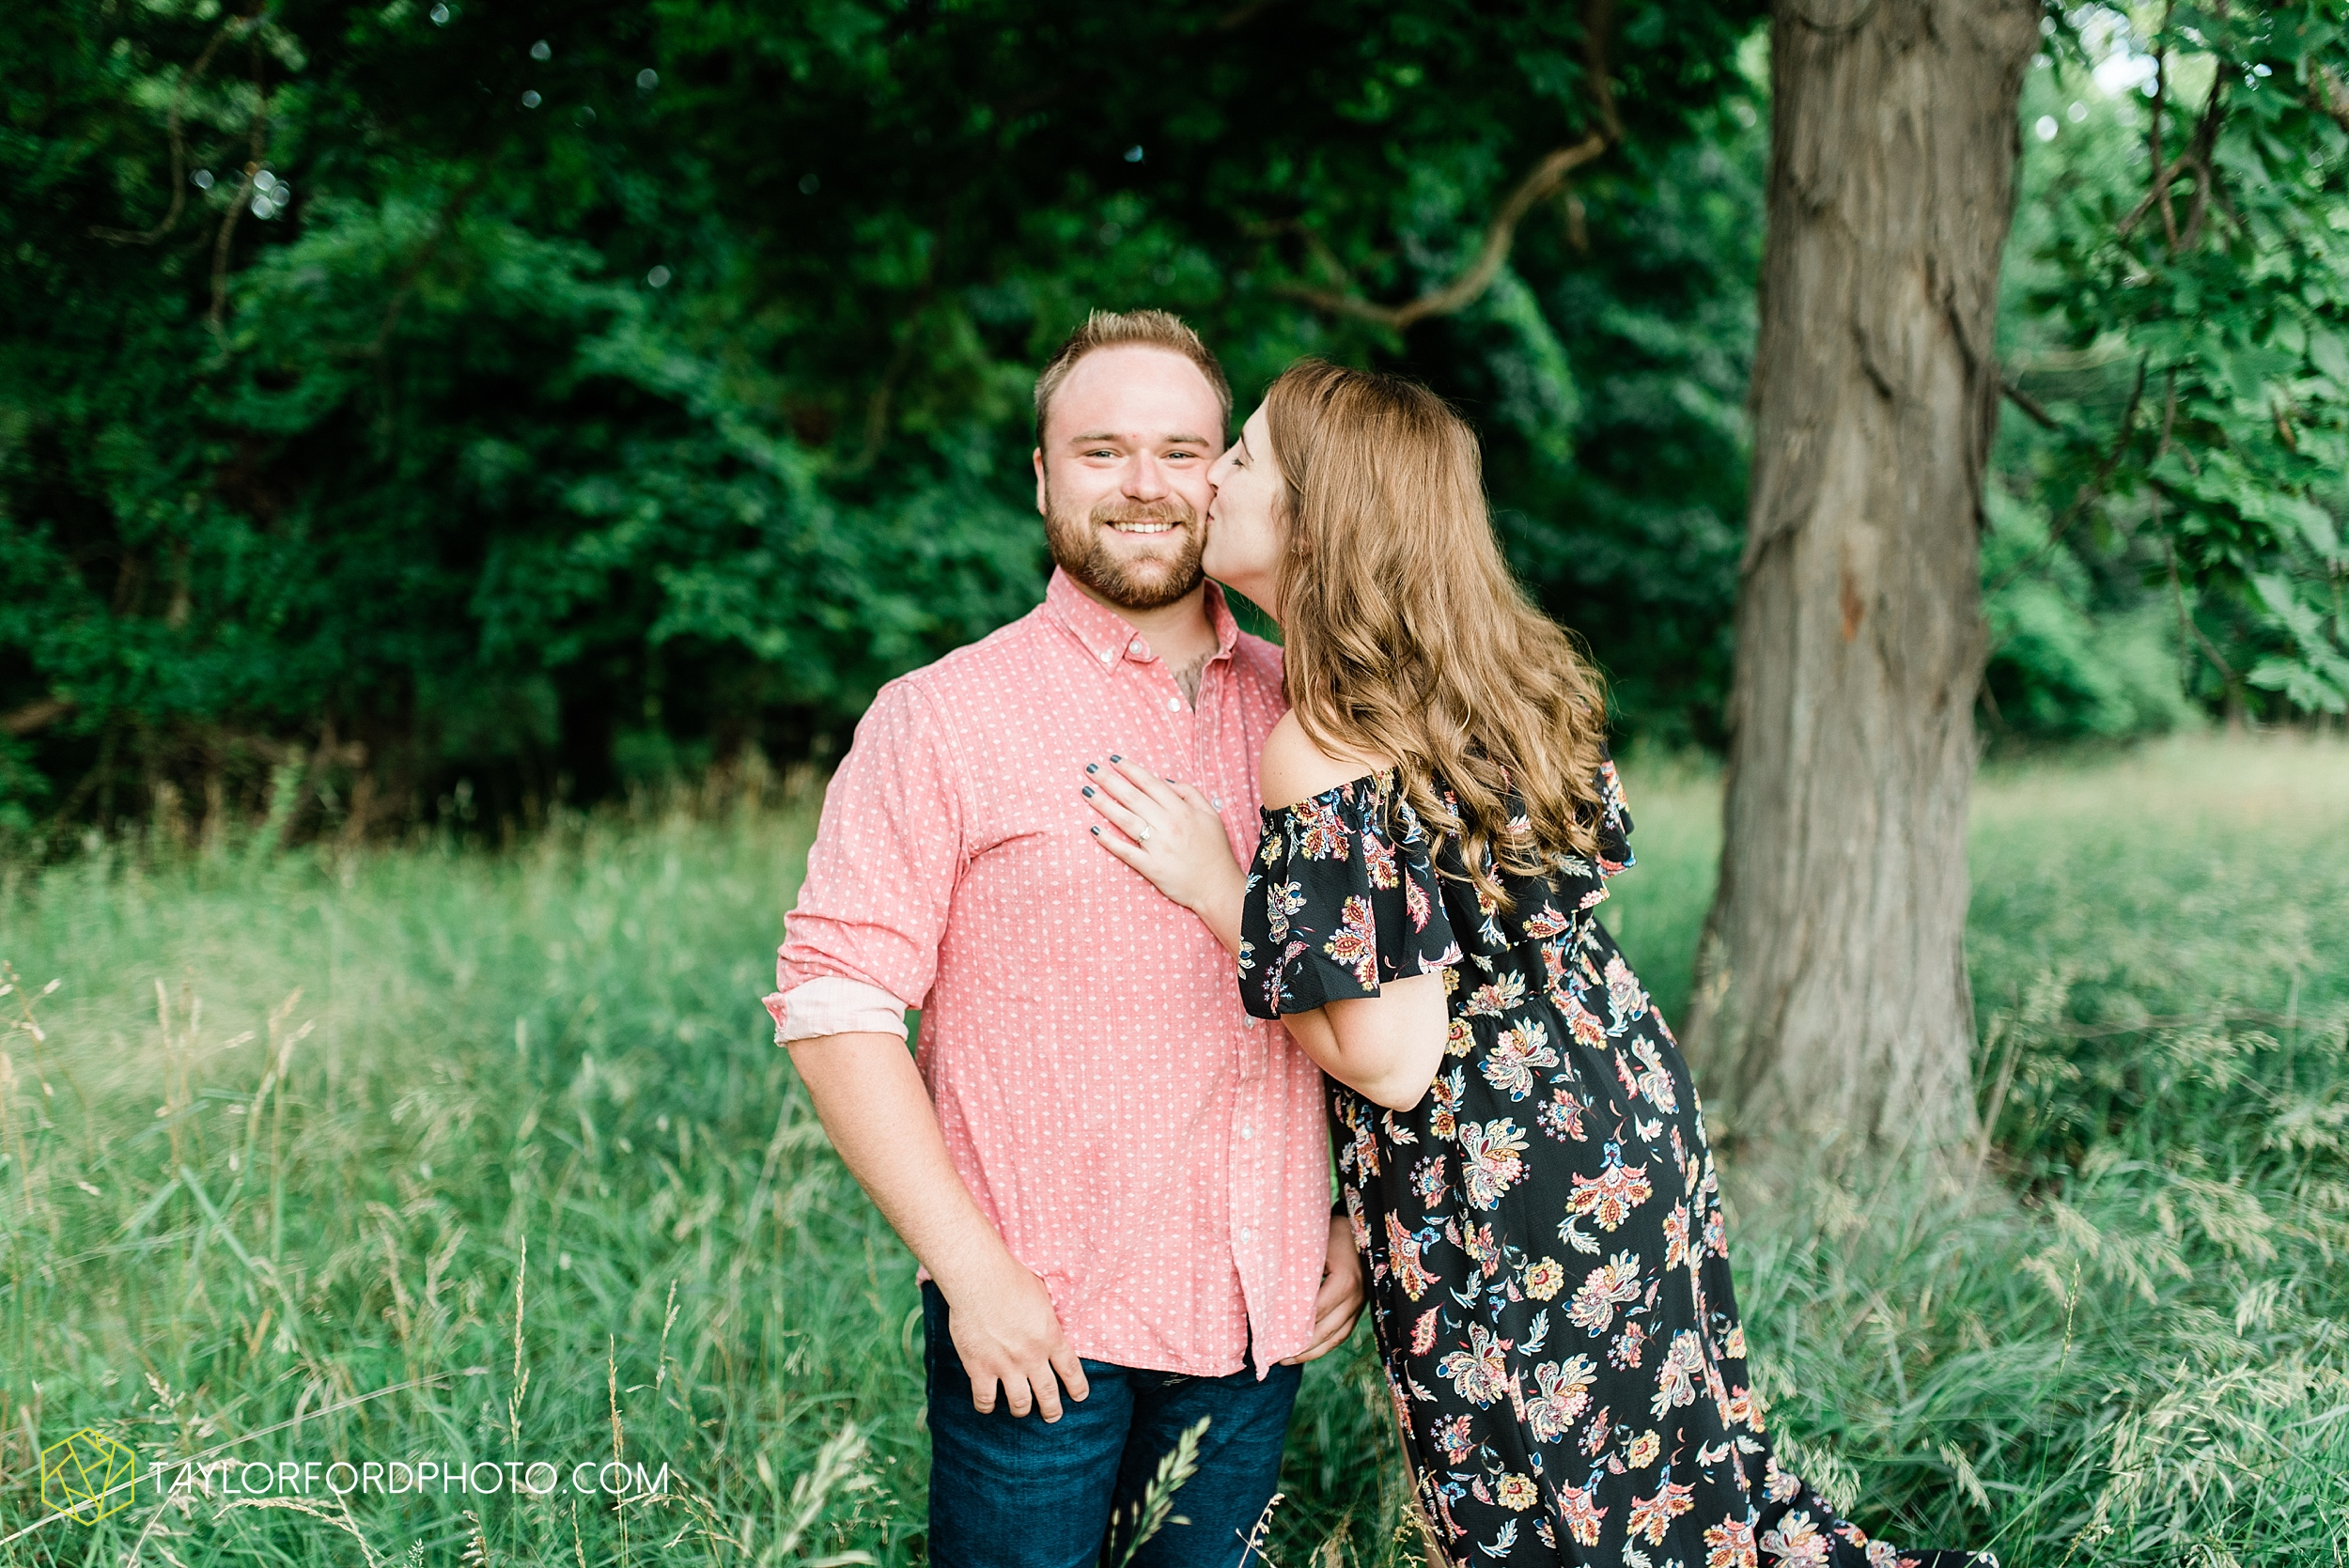 chelsey-jackson-young-downtown-fort-wayne-indiana-the-halls-deck-engagement-wedding-photographer-Taylor-Ford-Photography_8222.jpg